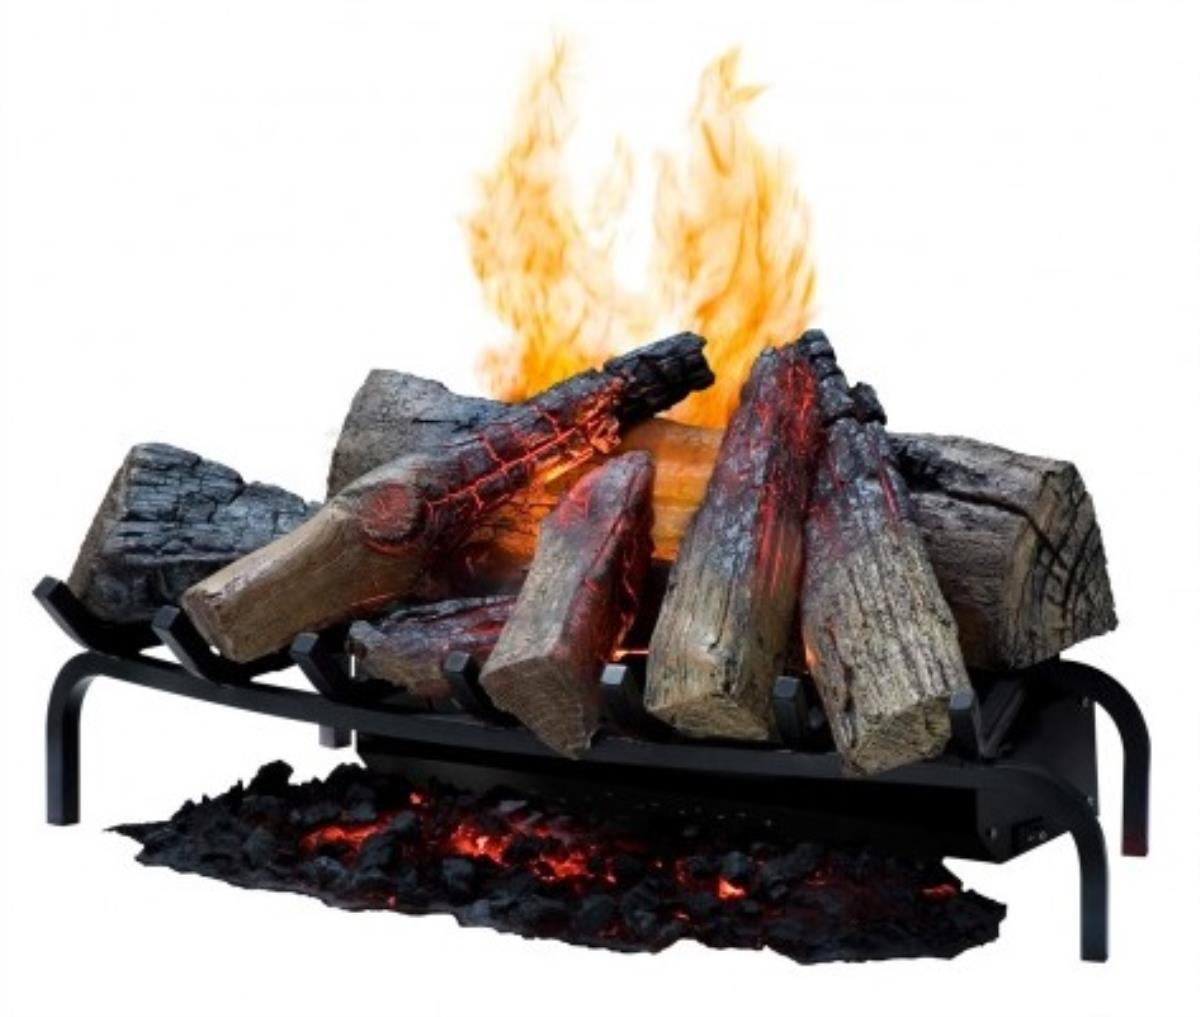 Dimplex DLGM29 Opti-Myst Open Hearth Fireplace Insert with Faux Logs Bed, Alabaster by DIMPLEX